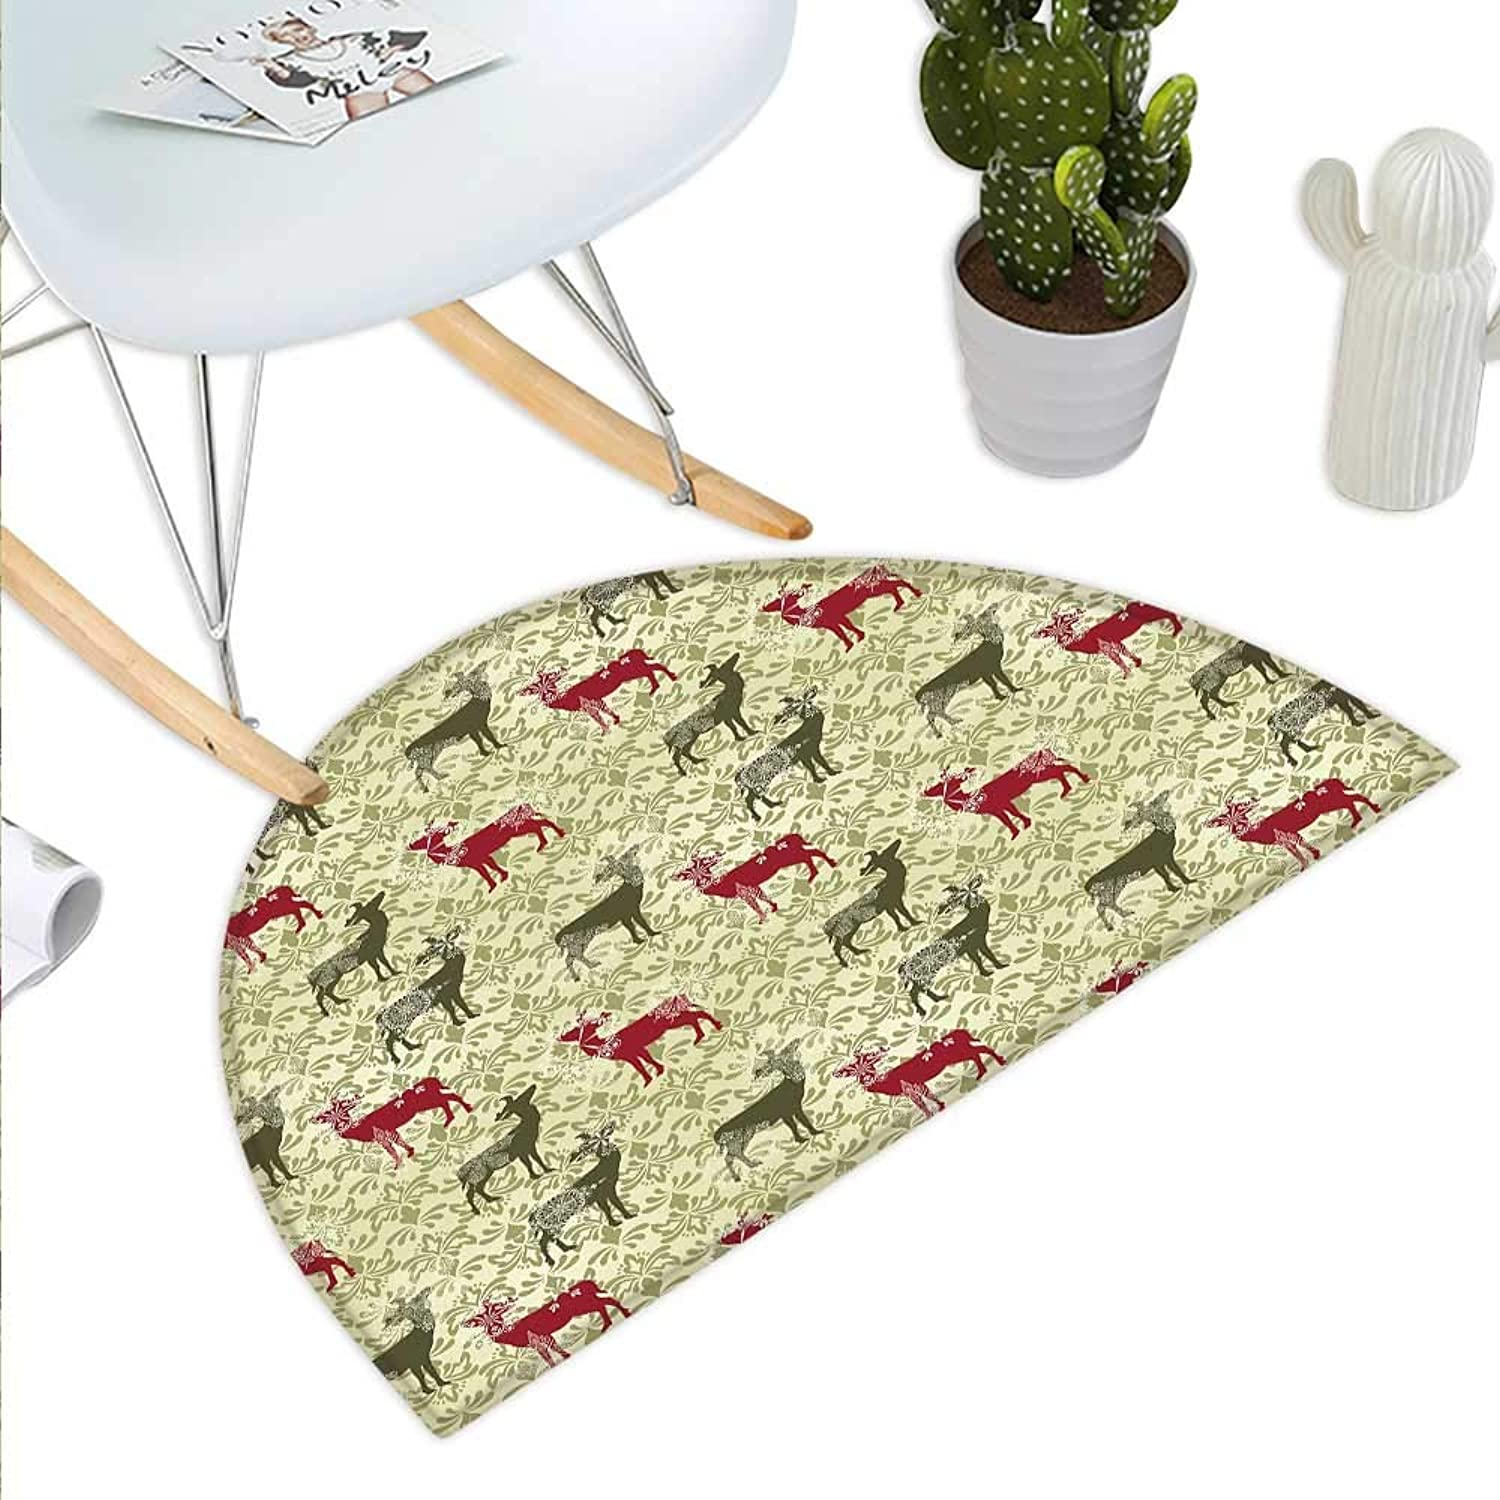 Deer Semicircle Doormat Damask Pattern Ethnic and Ornate Christmas Themed Animal Silhouettes Halfmoon doormats H 39.3  xD 59  Ruby Olive Green Pale Green